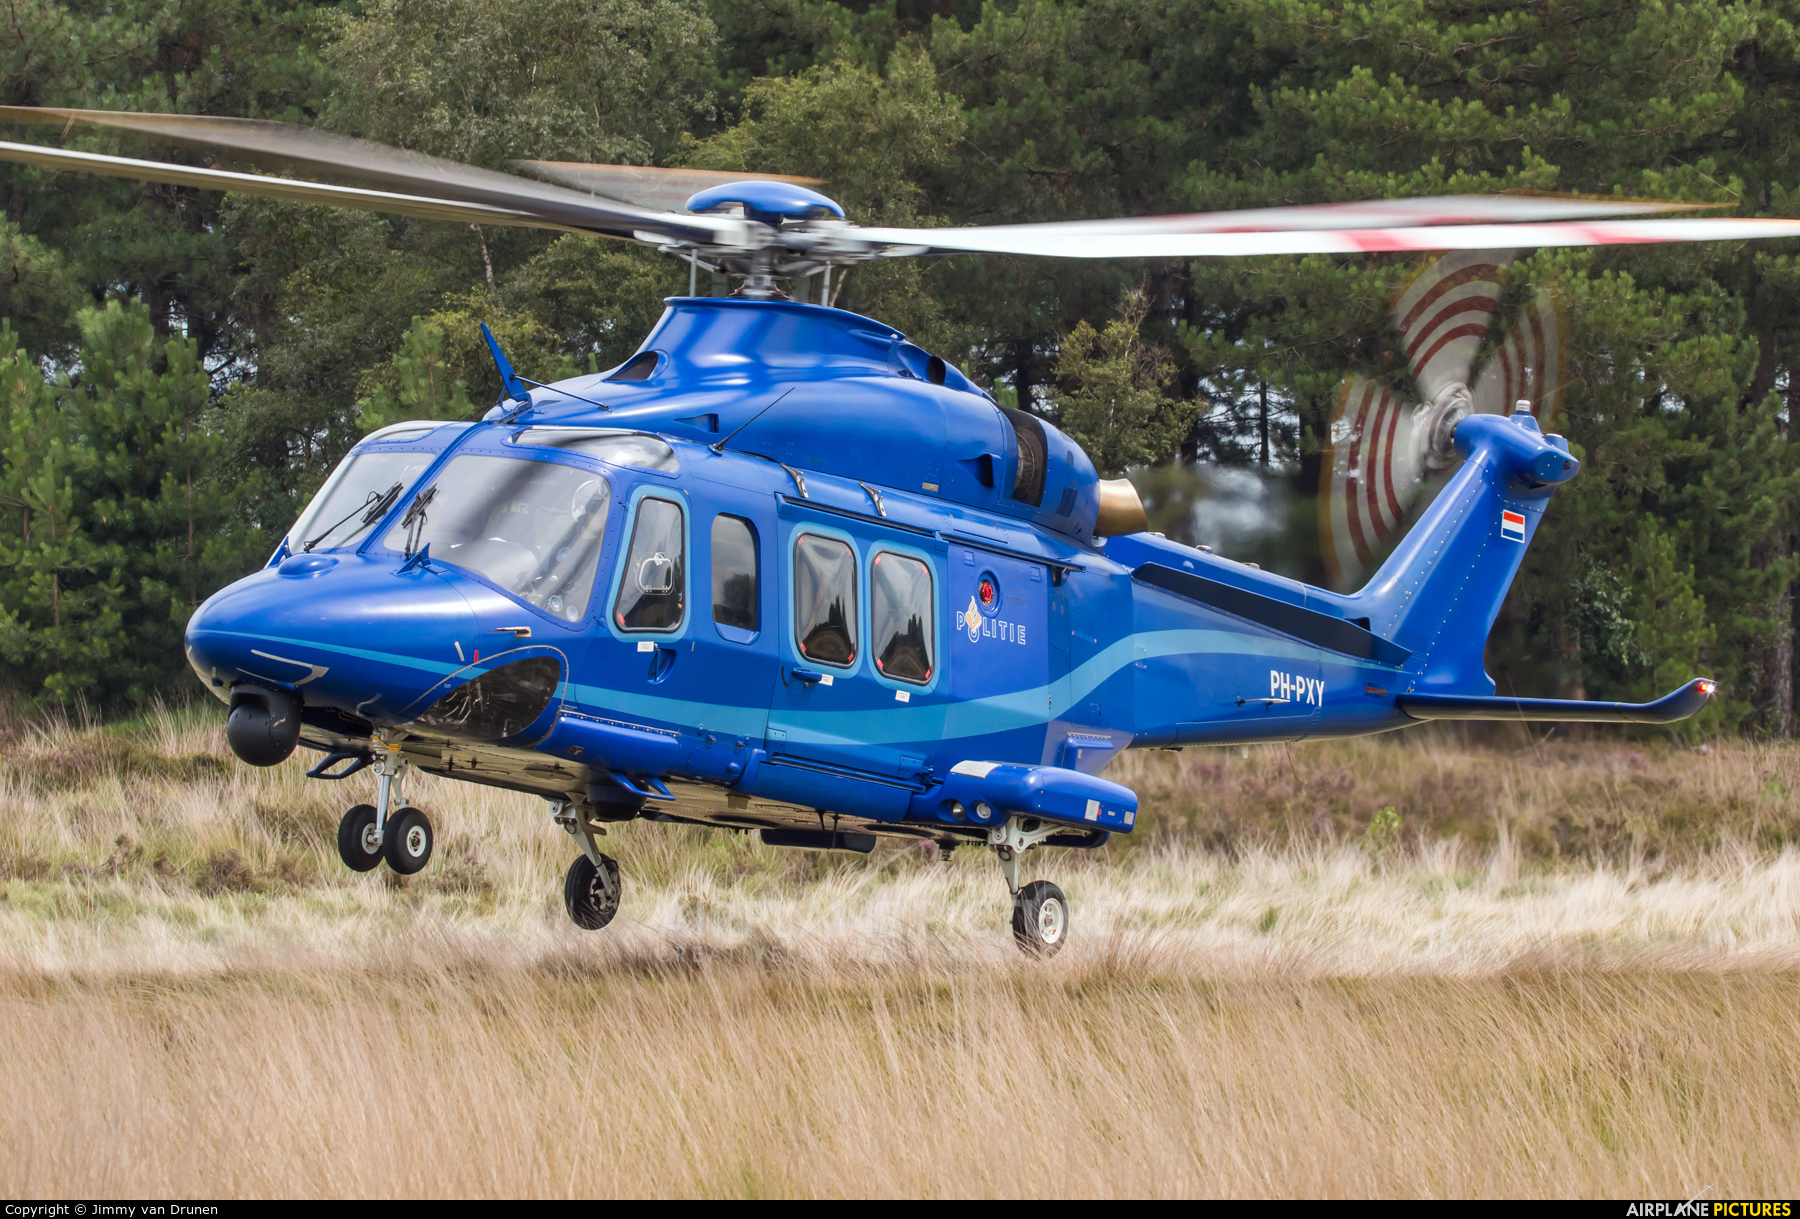 Netherlands - Police PH-PXY aircraft at GLV-5 Training area